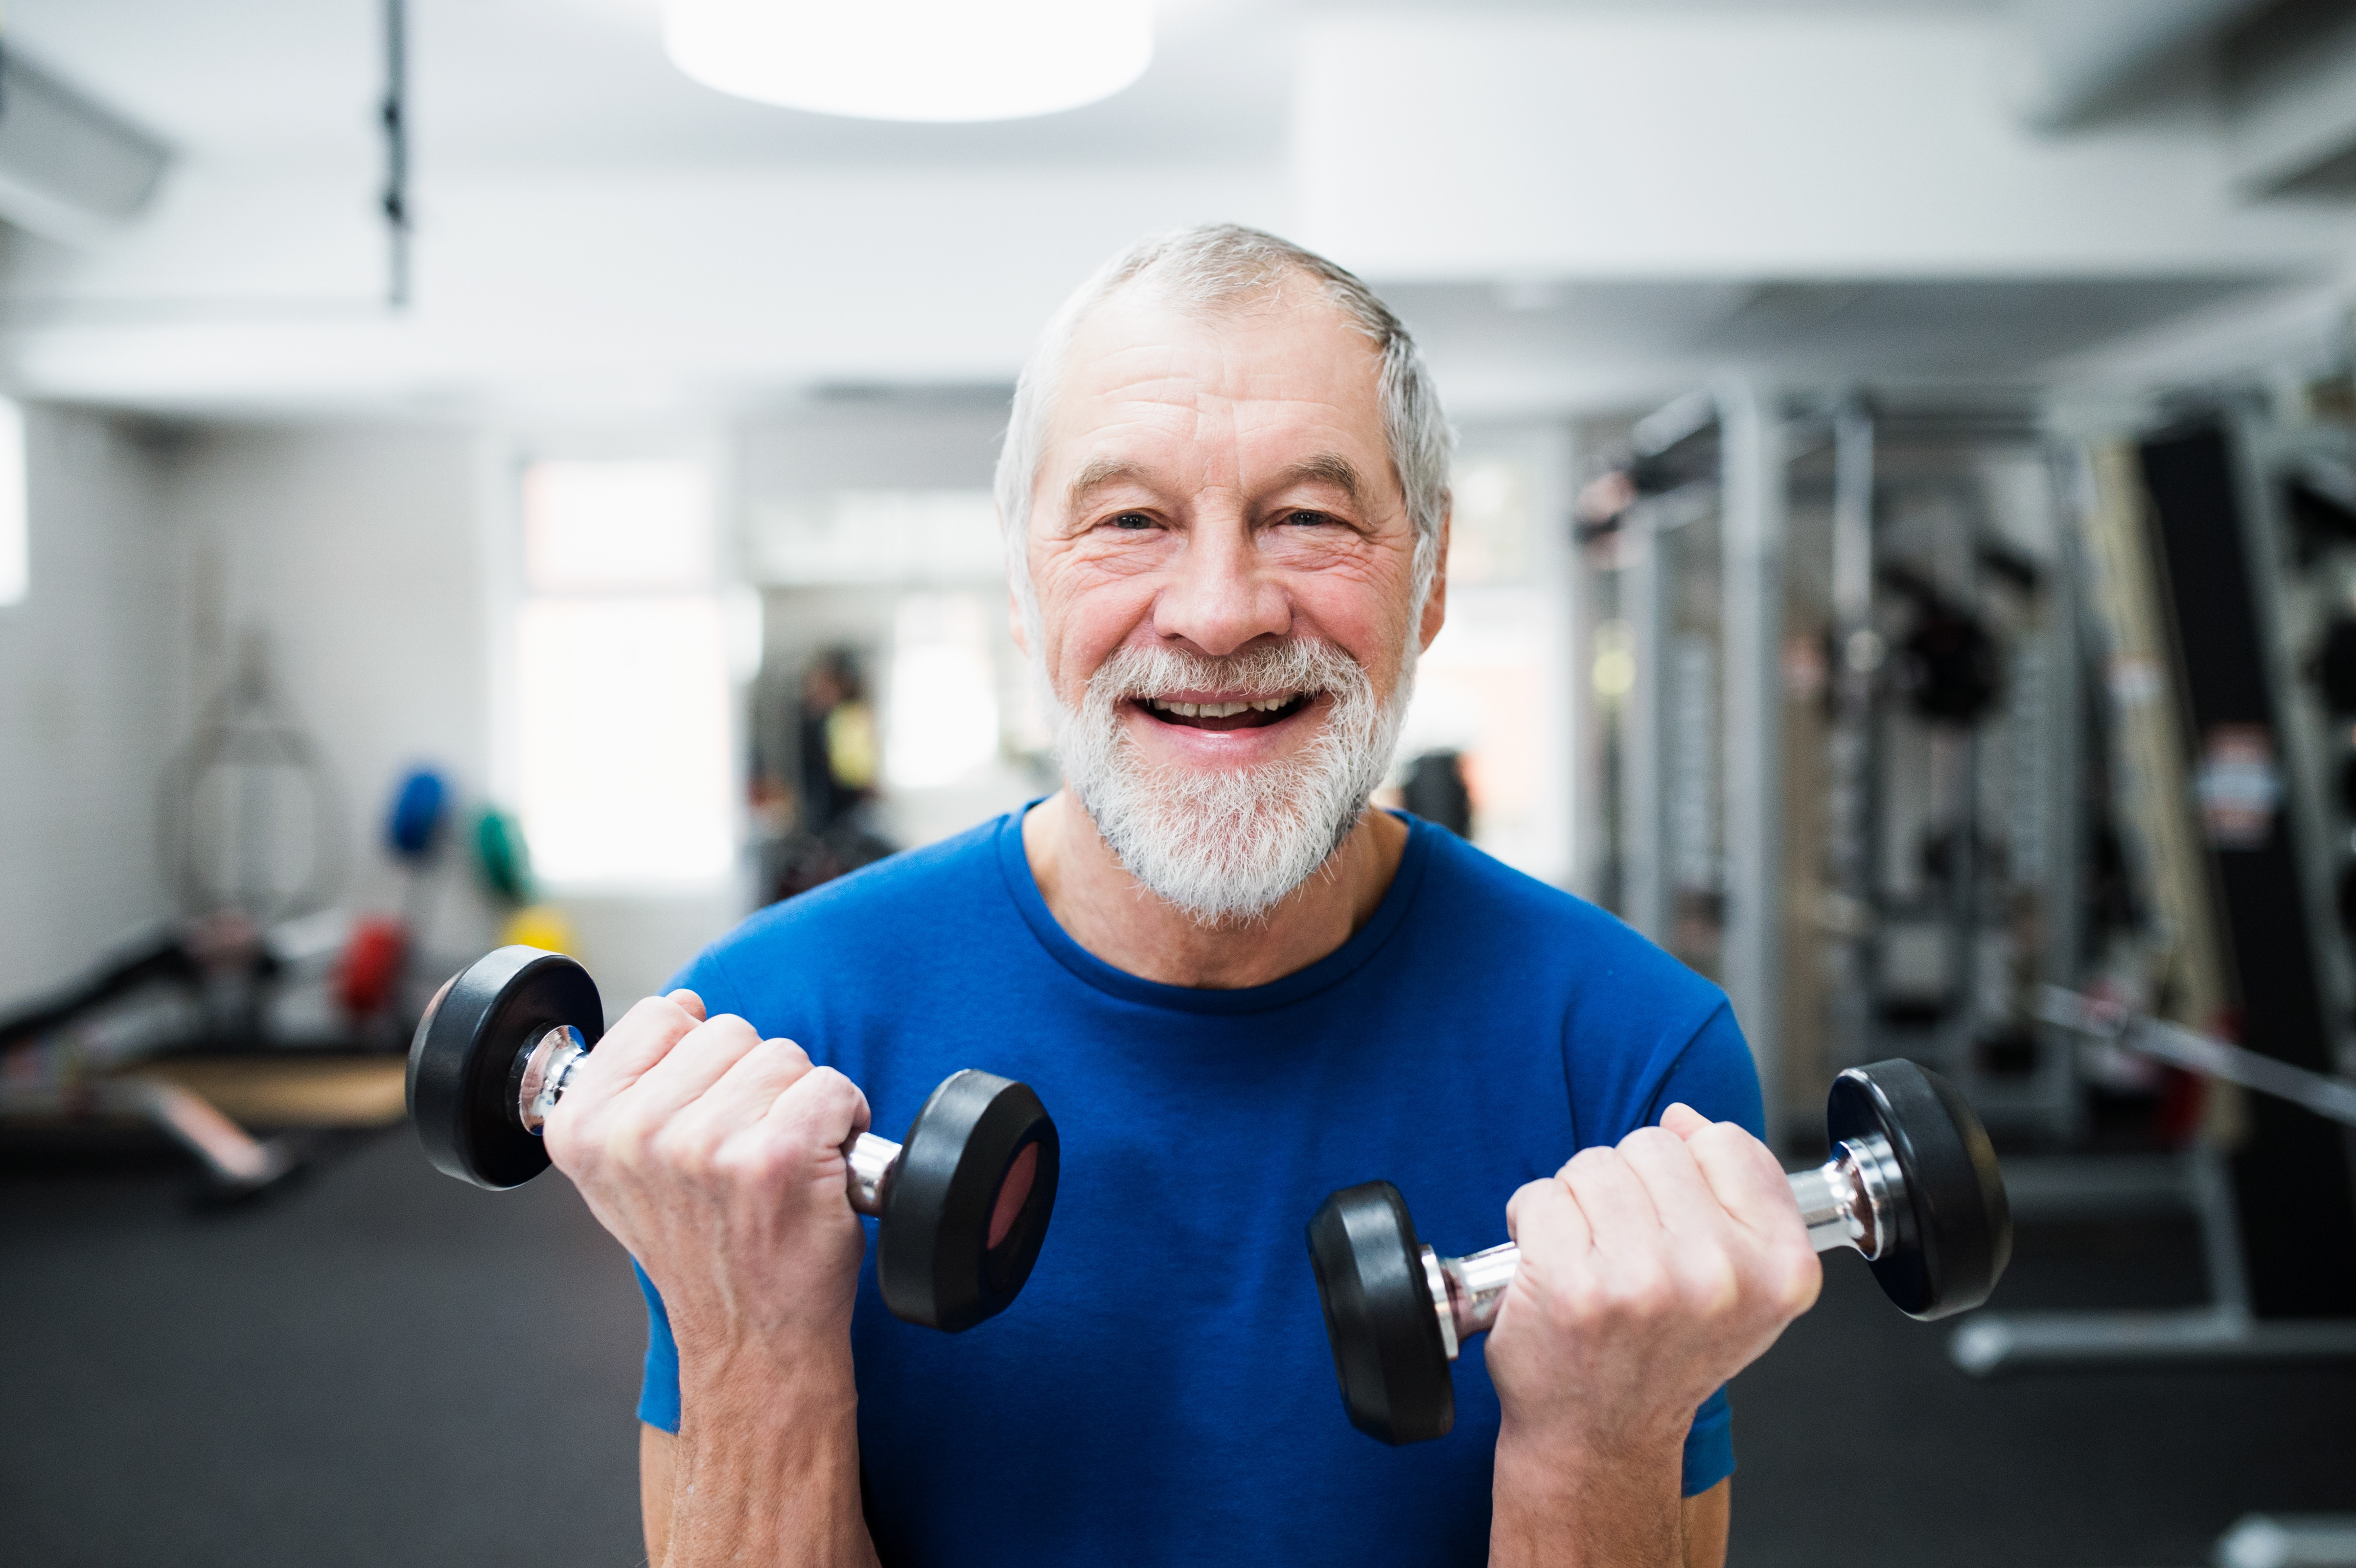 Use weights that you can lift in the five to 10 repetition range (Shutterstock)